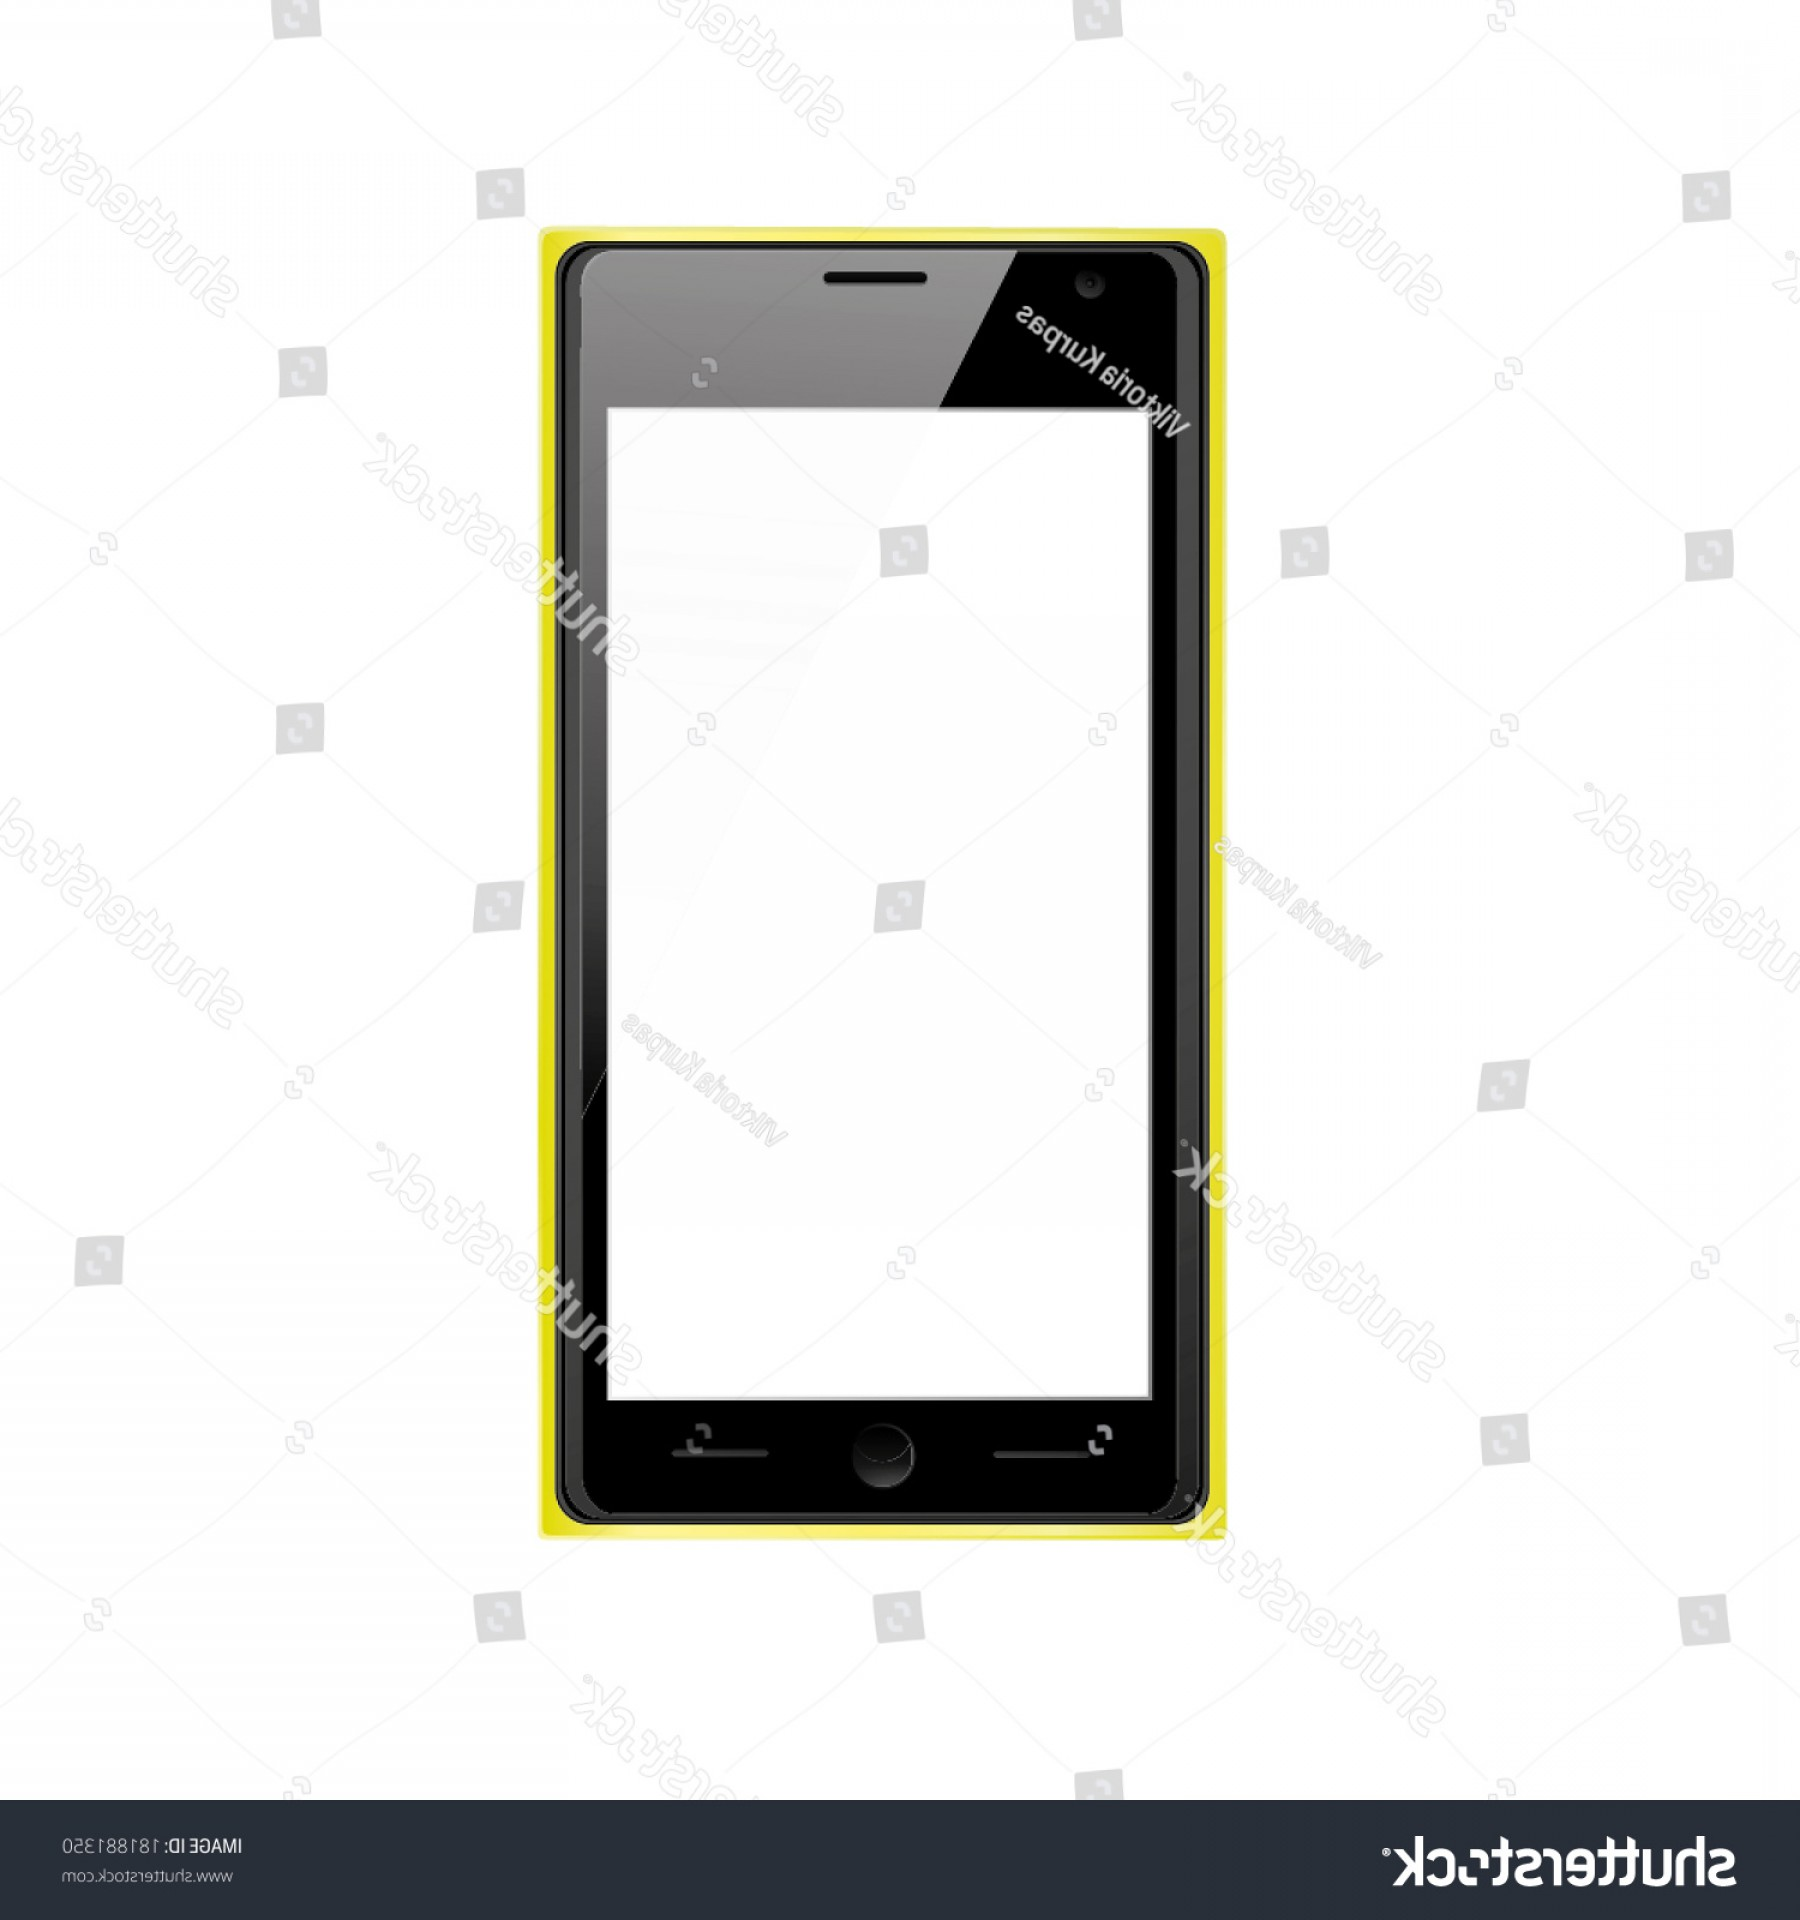 Search Logo Lumia Vector: Vector Illustration Modern Black Mobile Phone